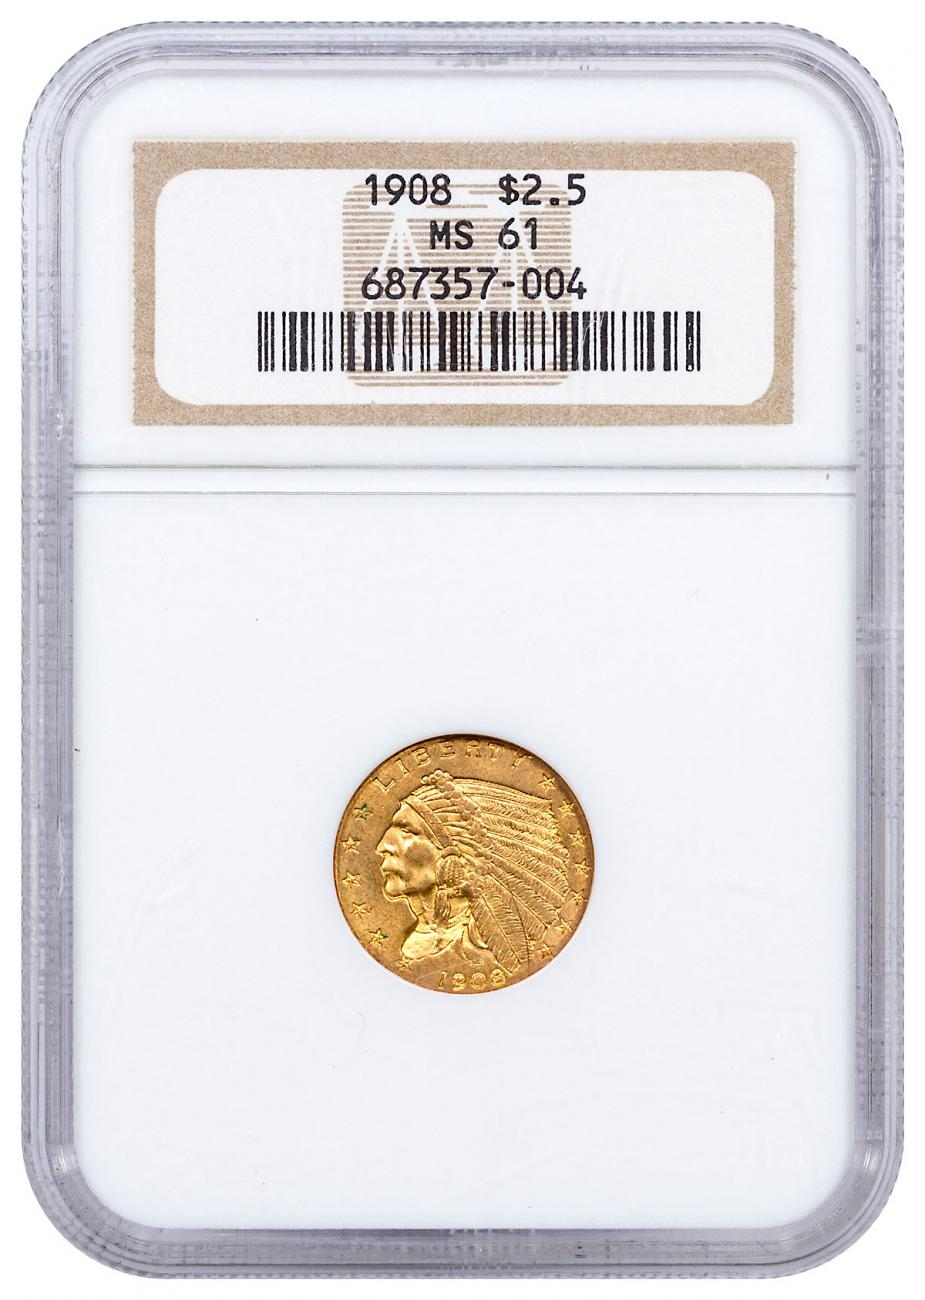 1908 Indian Head $2.5 Gold Quarter Eagles NGC MS61